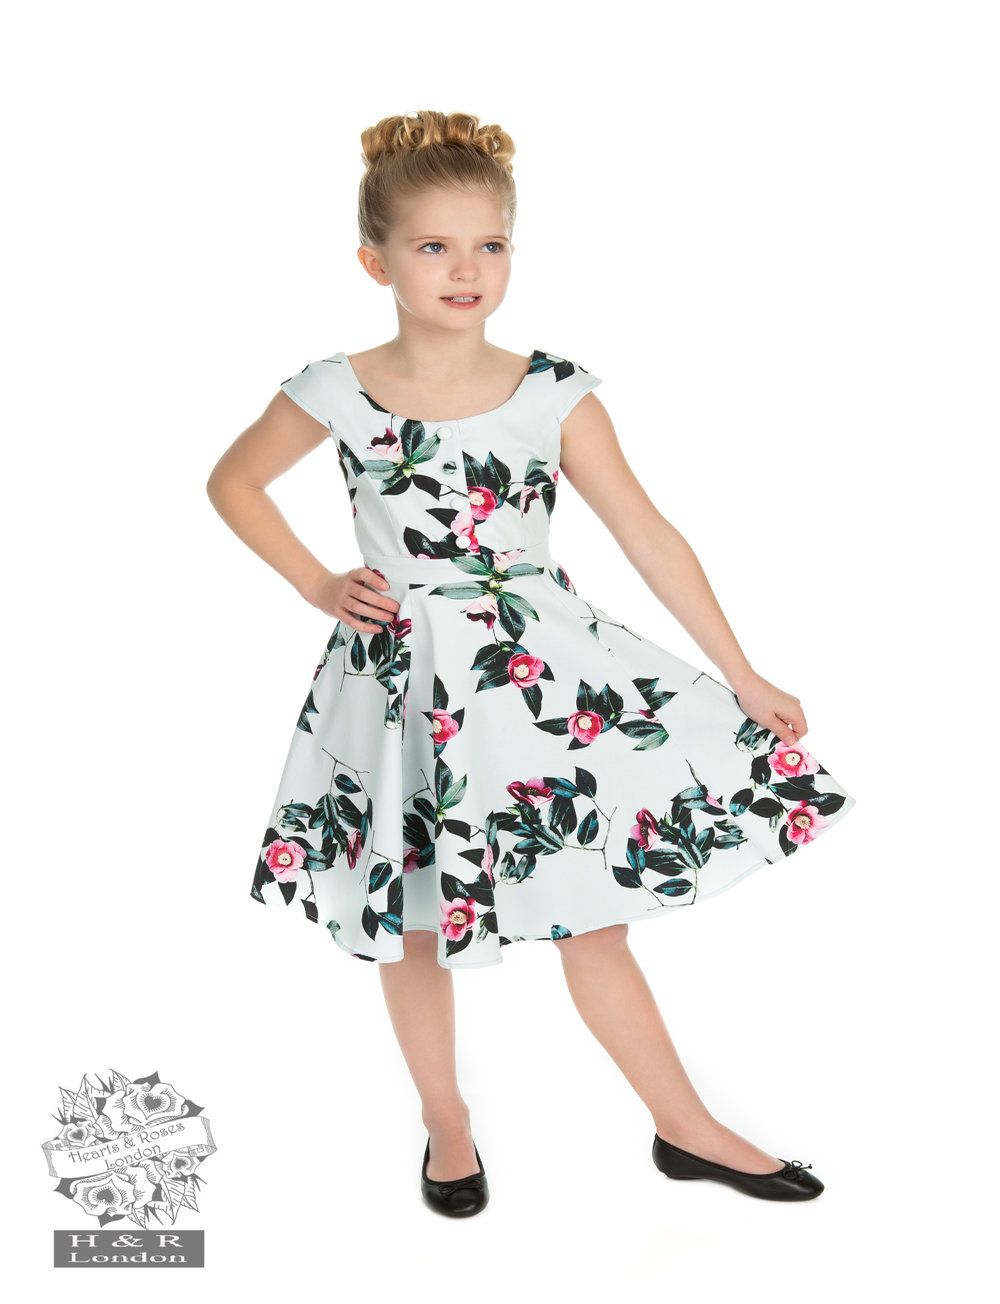 H&R Children's Mademoiselle Retro Dress 3-4 Years